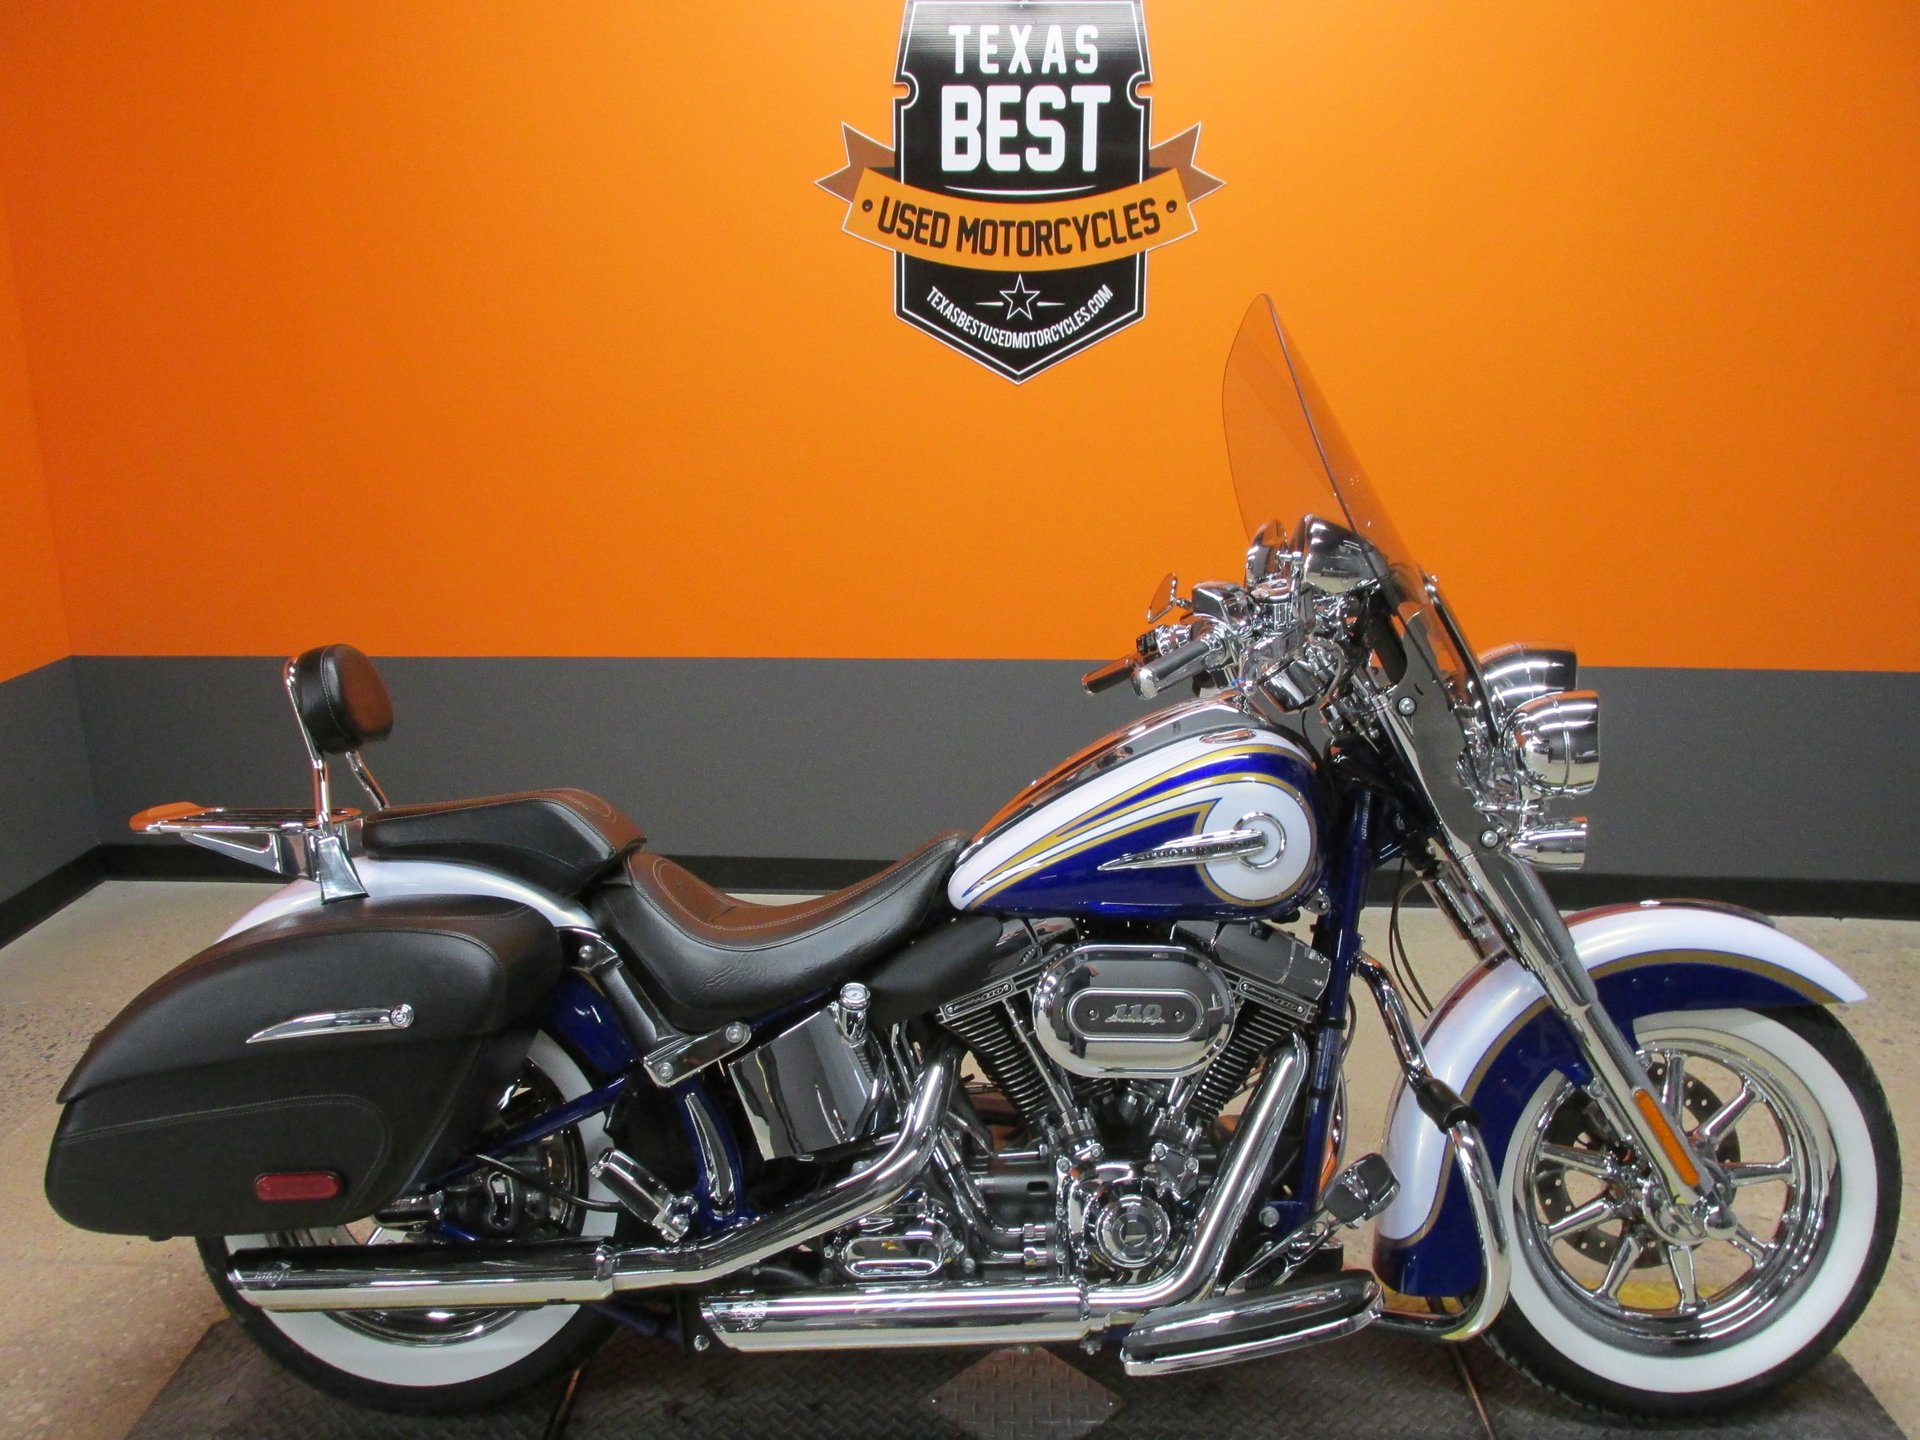 2014 Harley Davidson Cvo Softail Deluxe American Motorcycle Trading Company Used Harley Davidson Motorcycles